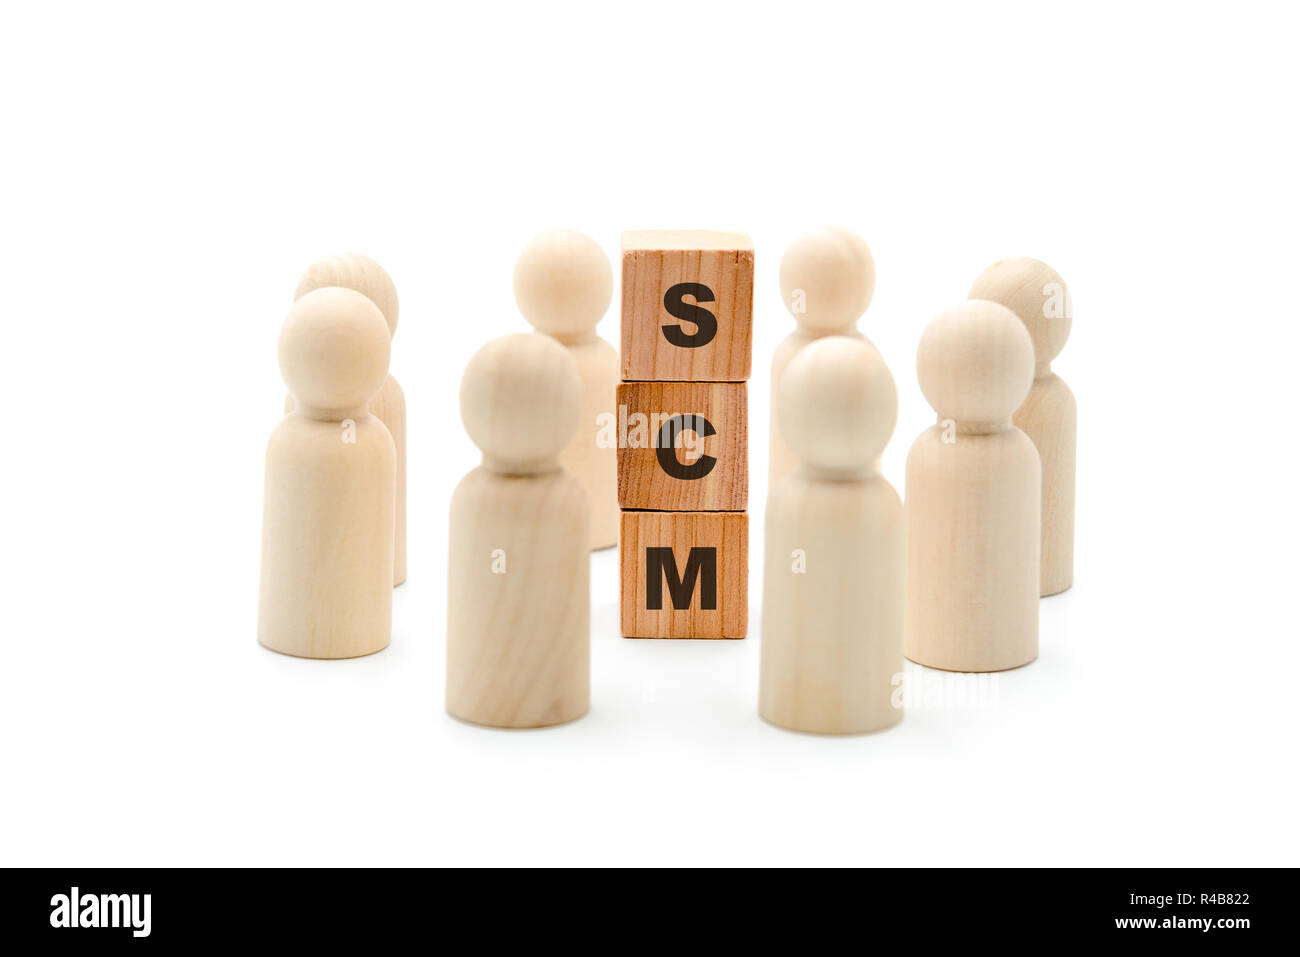 Wooden figures as business team in circle around acronym SCM Supply Chain Management, isolated on white background, minimalist concept Stock Photo